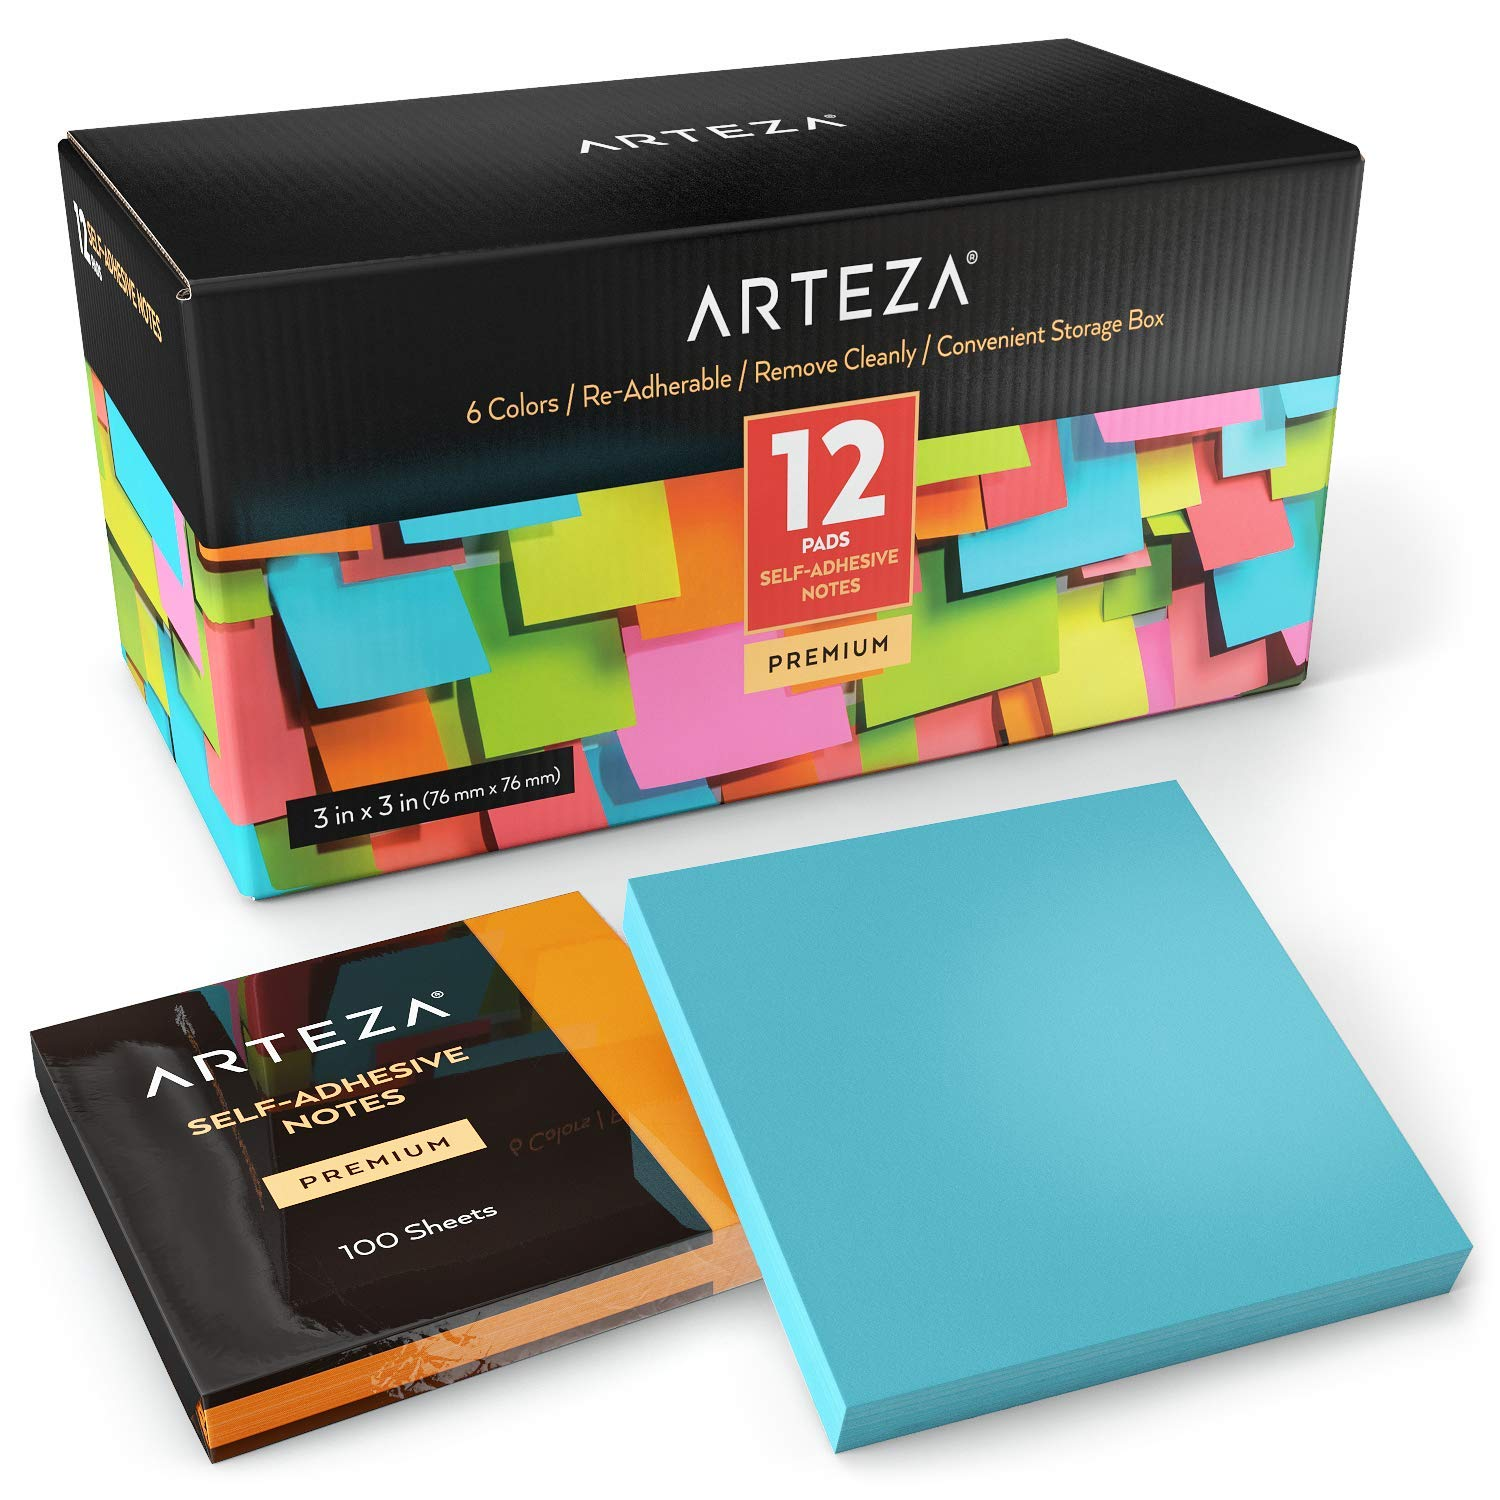 ARTEZA 3x3 Inches Sticky Notes, 12 Pads, 100 Sheets Per Pad, Bulk Pack, Assorted Colors, Re-Adhesive, Clean Removal, for Reminders, Studying, Office, School, and Home